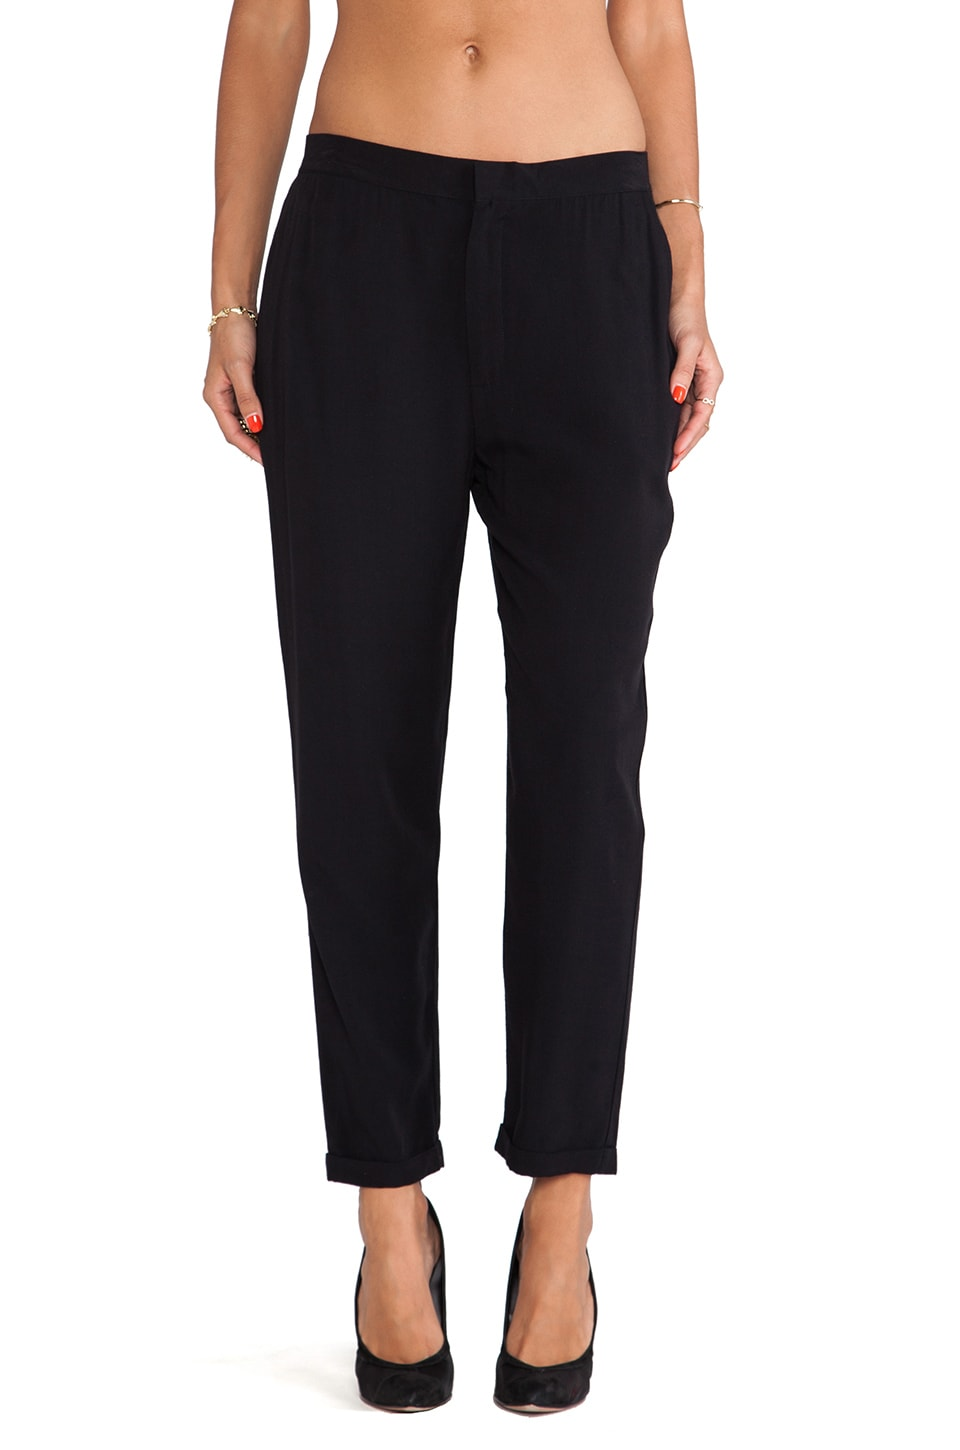 BB Dakota Farber Challis Pant in Black